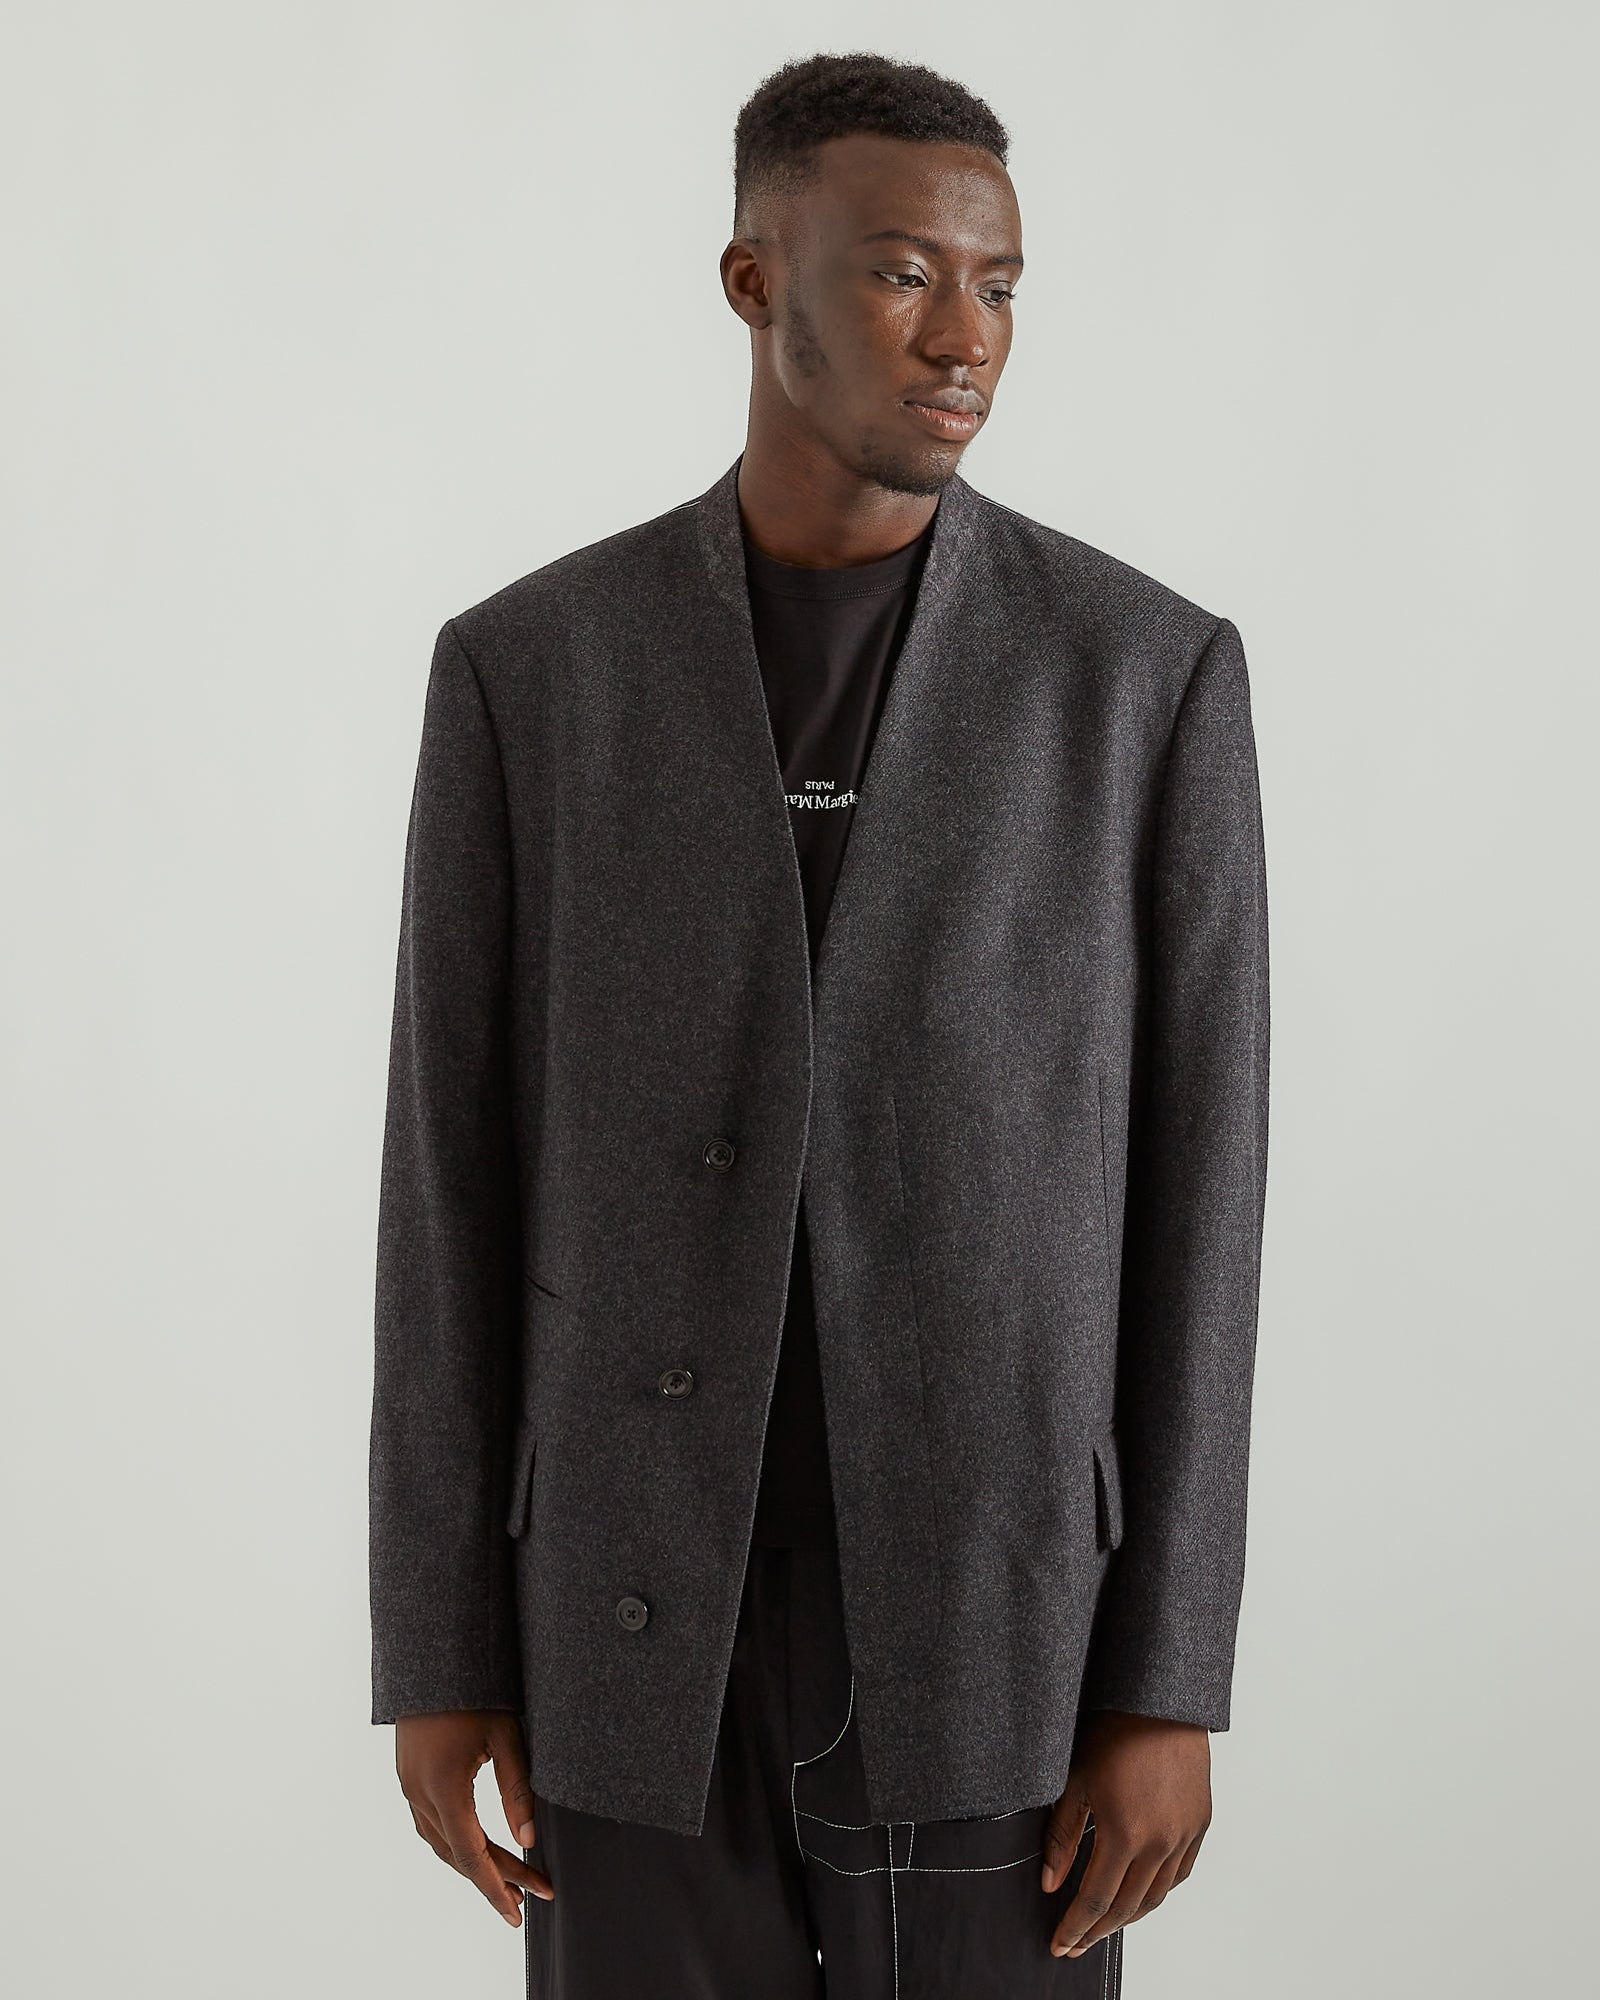 Collarless Suit Jacket in Black Fleck Wool